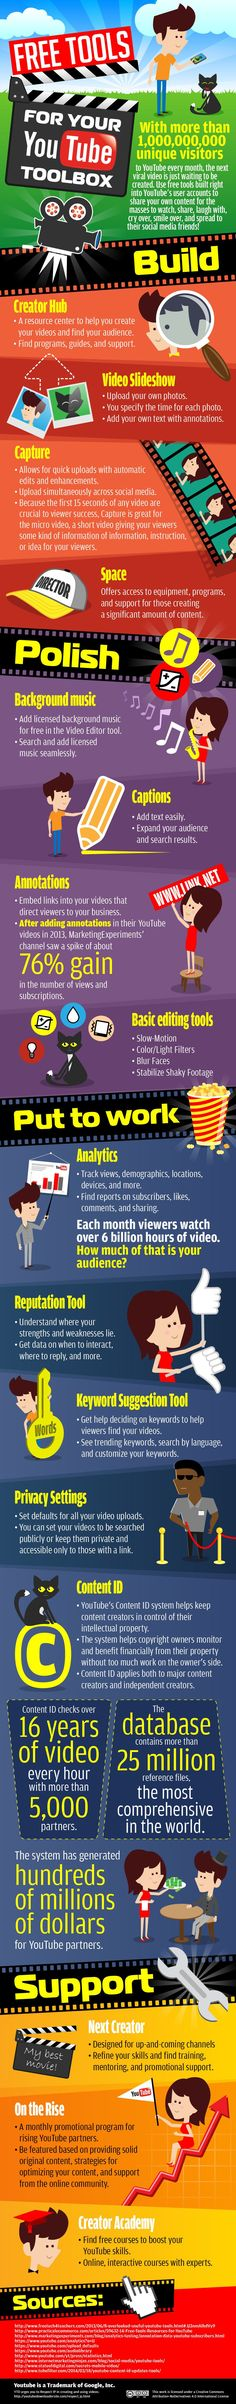 Free Tools For Your #YouTube Toolbox - #infographic #socialmedia #marketing